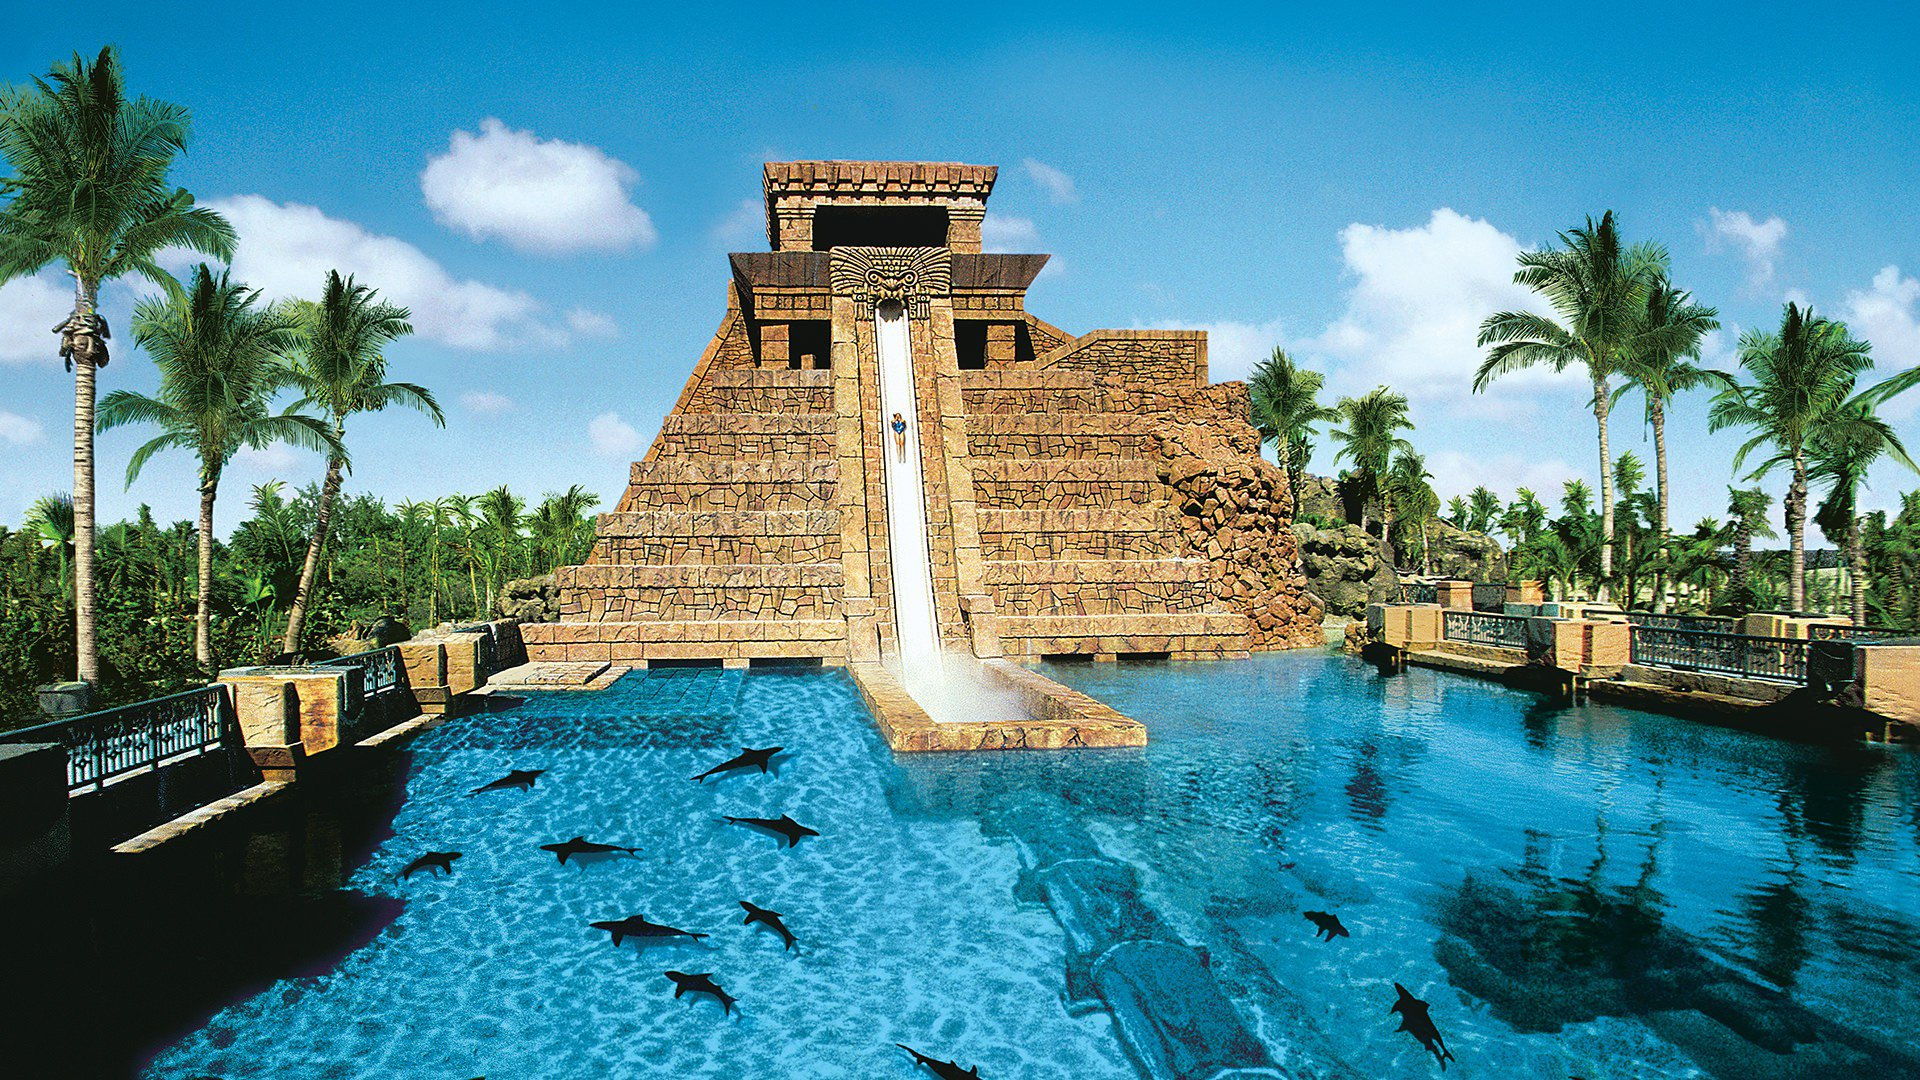 Aquaventure New Providence and Paradise Islands, Aquaventure at Atlantis, Paradise Island | Atlantis Water Park